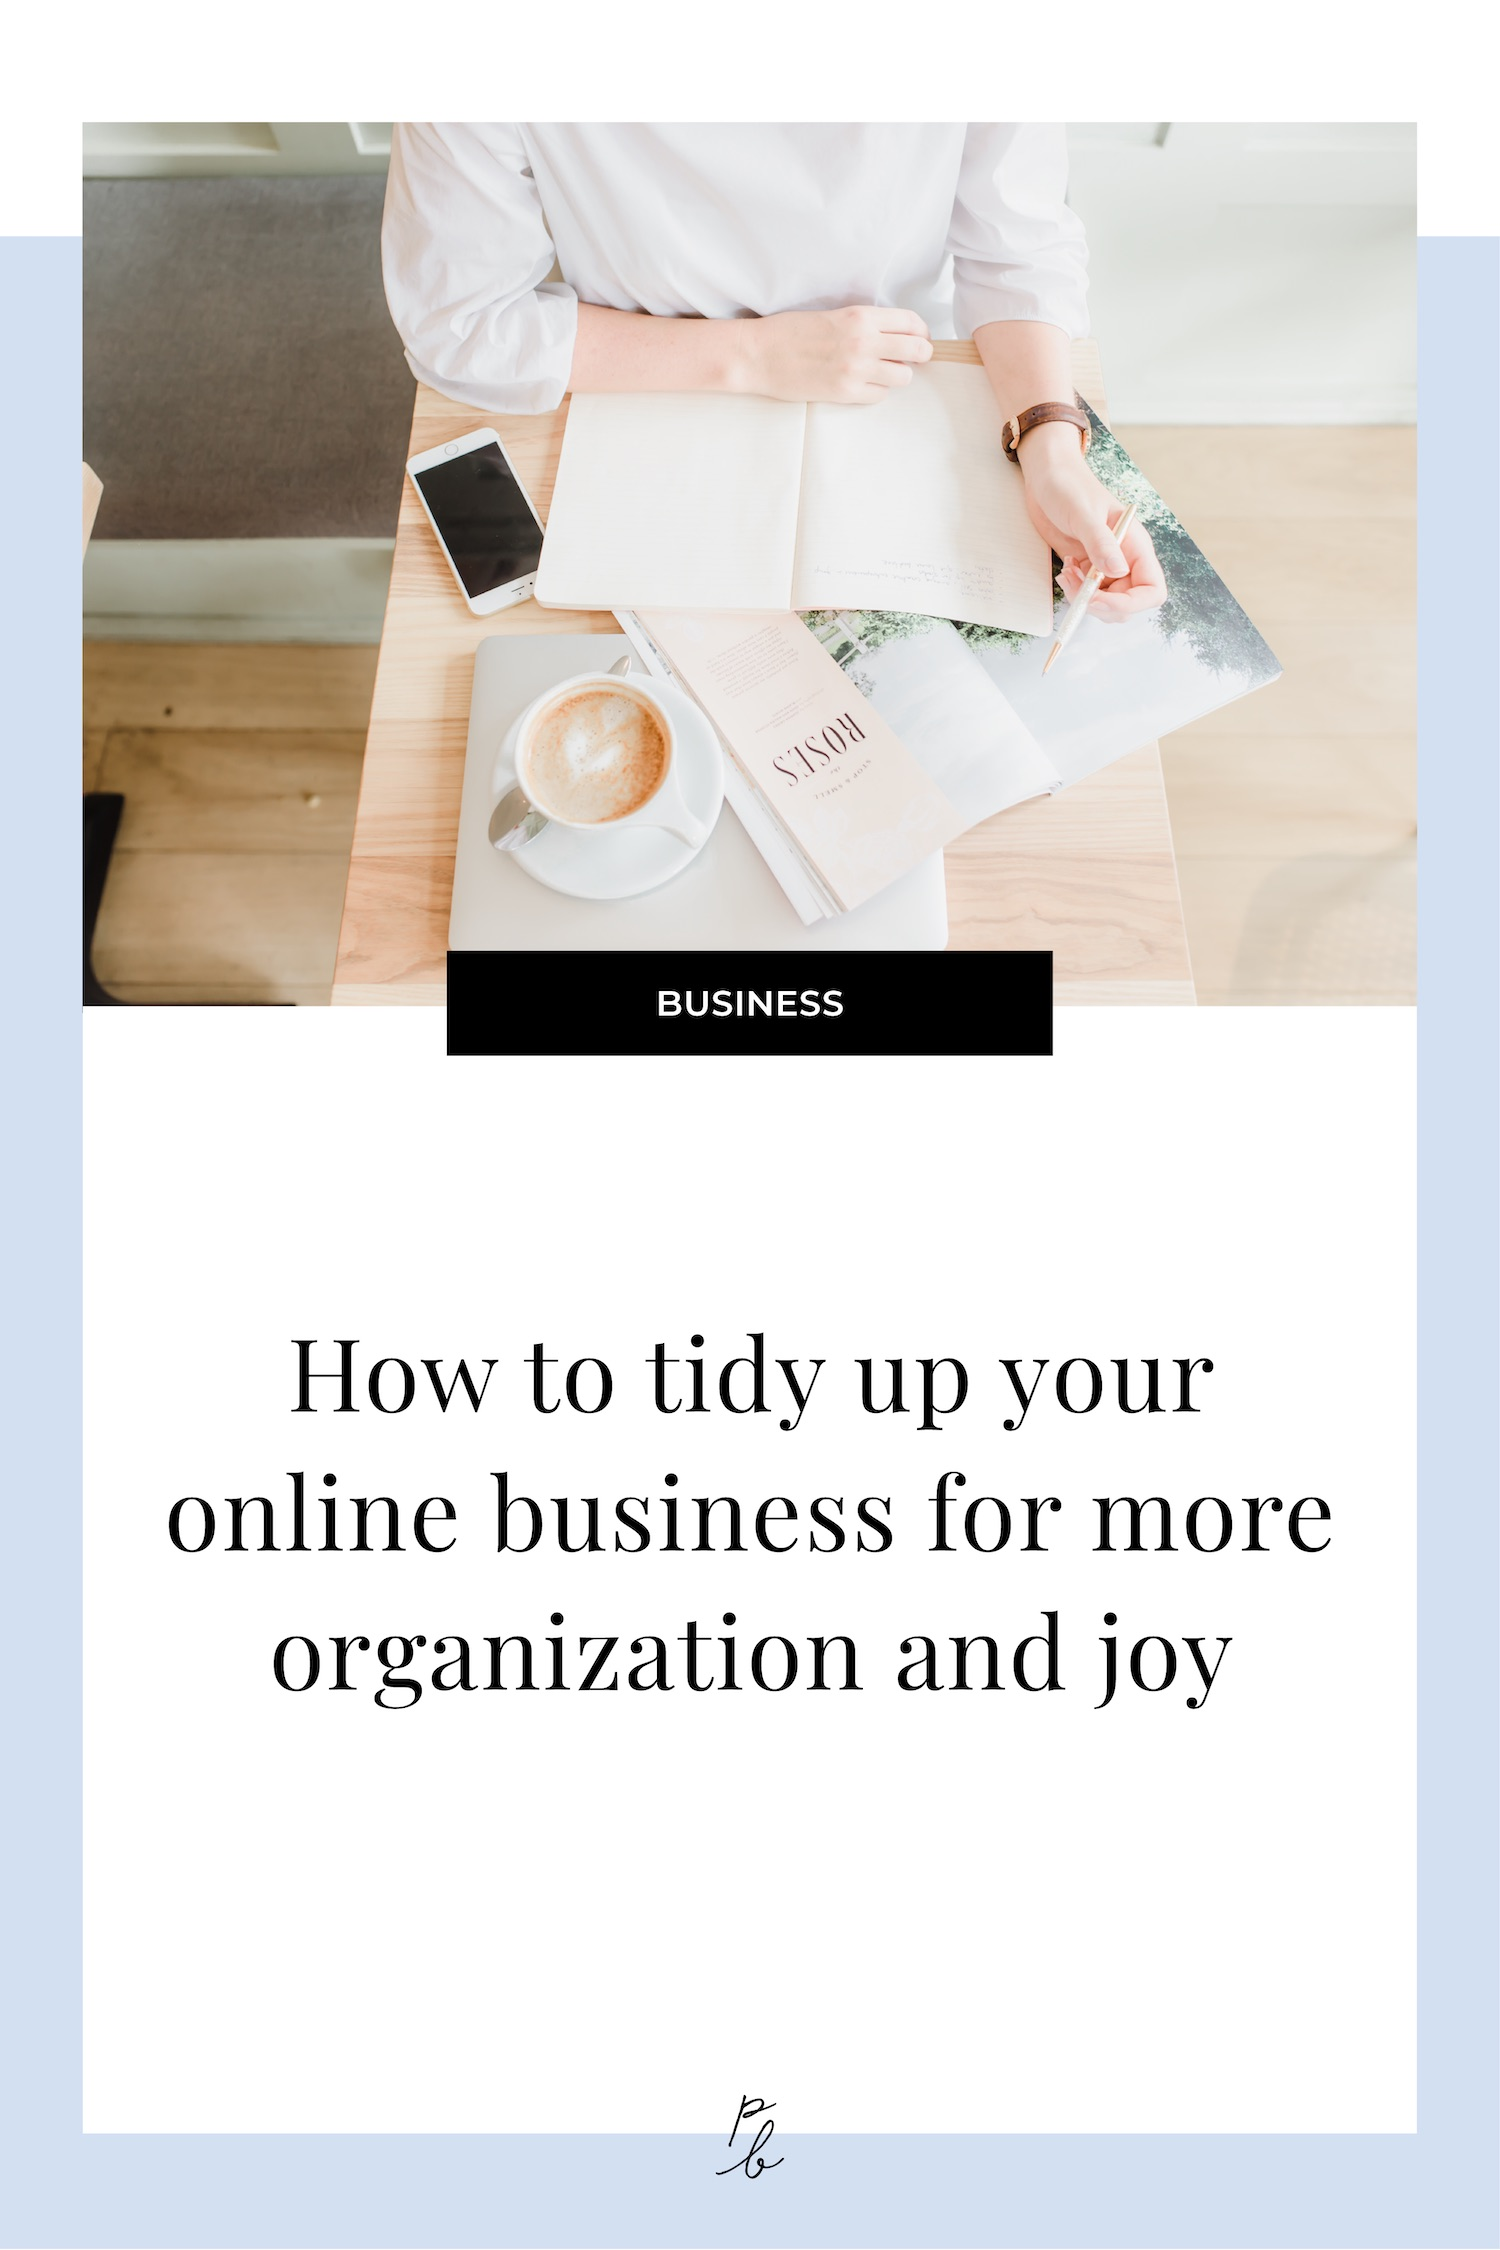 How to tidy up your online business for more organization and joy.jpg